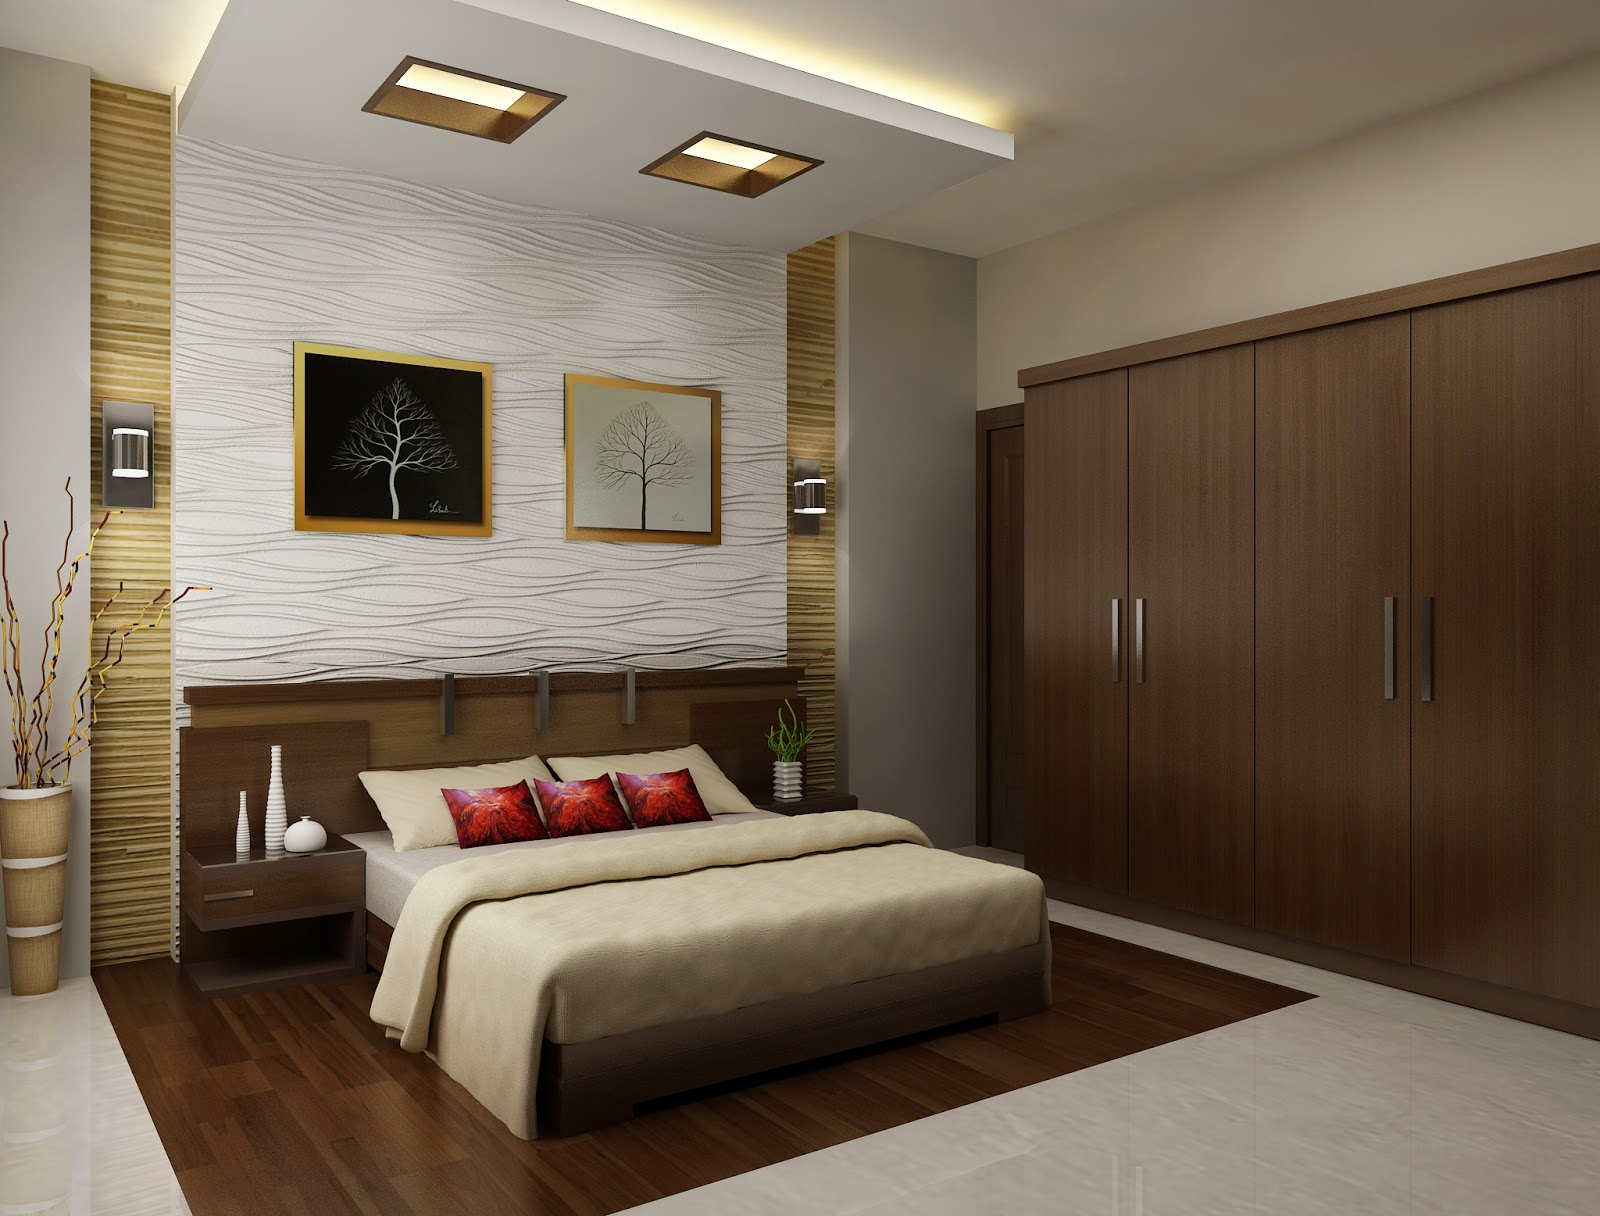 bedrooms interior designs. Kerala Interior Design Bedroom  Apartment